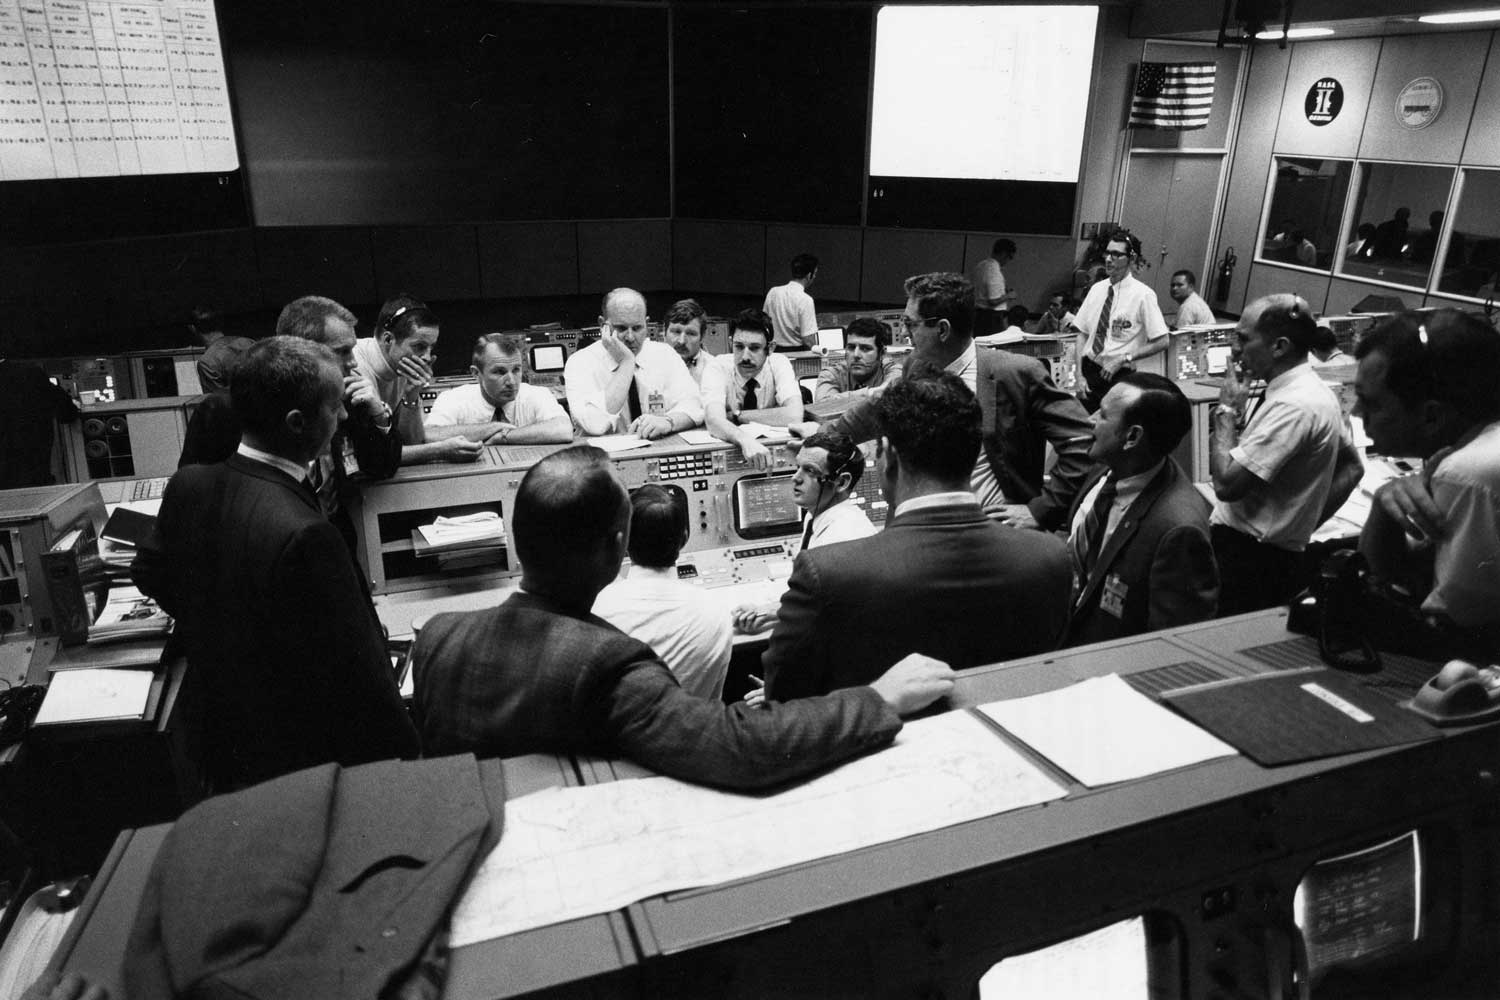 Mission Control during final 24 hours of Apollo 13 mission. (Image: NASA)